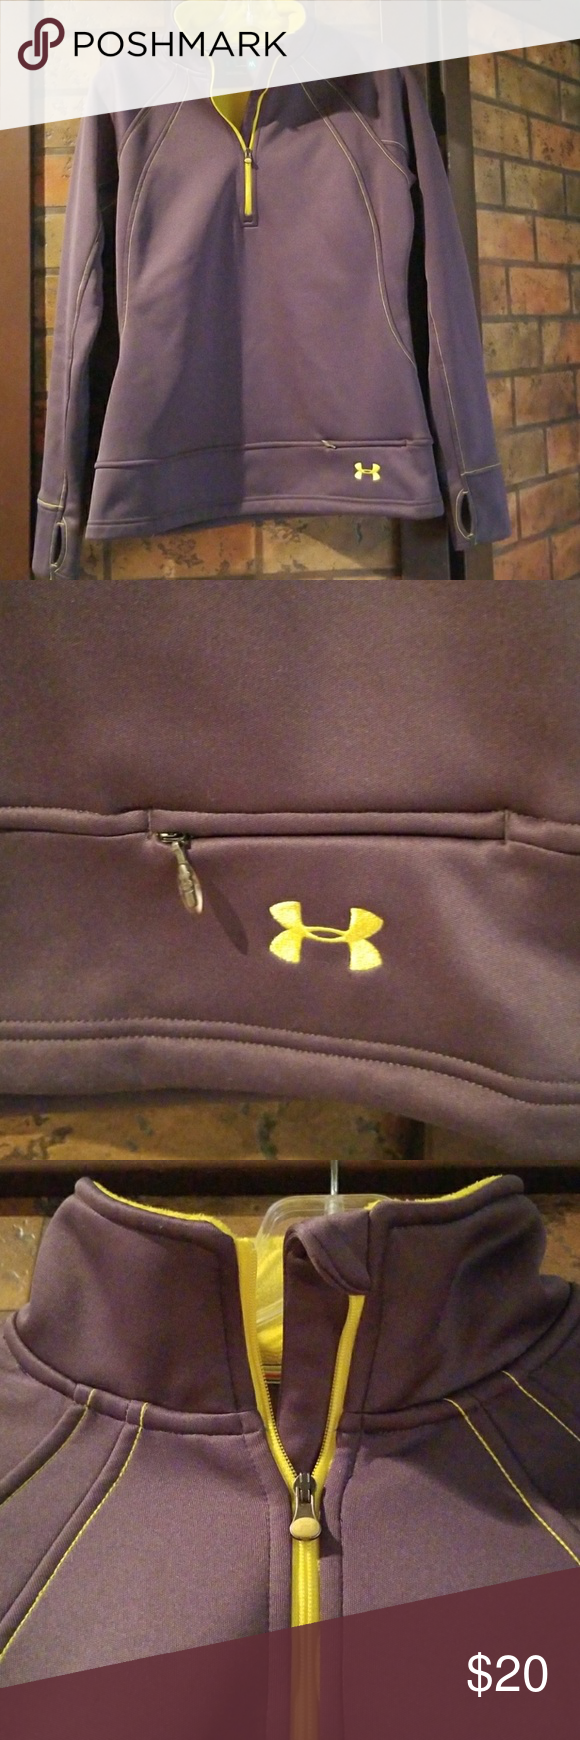 🔥PRICE ⬇️🔥 Women's Under Armour Semi Fitted Half Zip in a really nice dark grey with yellow stitching.  In excellent pre loved condition. ❤ Under Armour Tops Sweatshirts & Hoodies